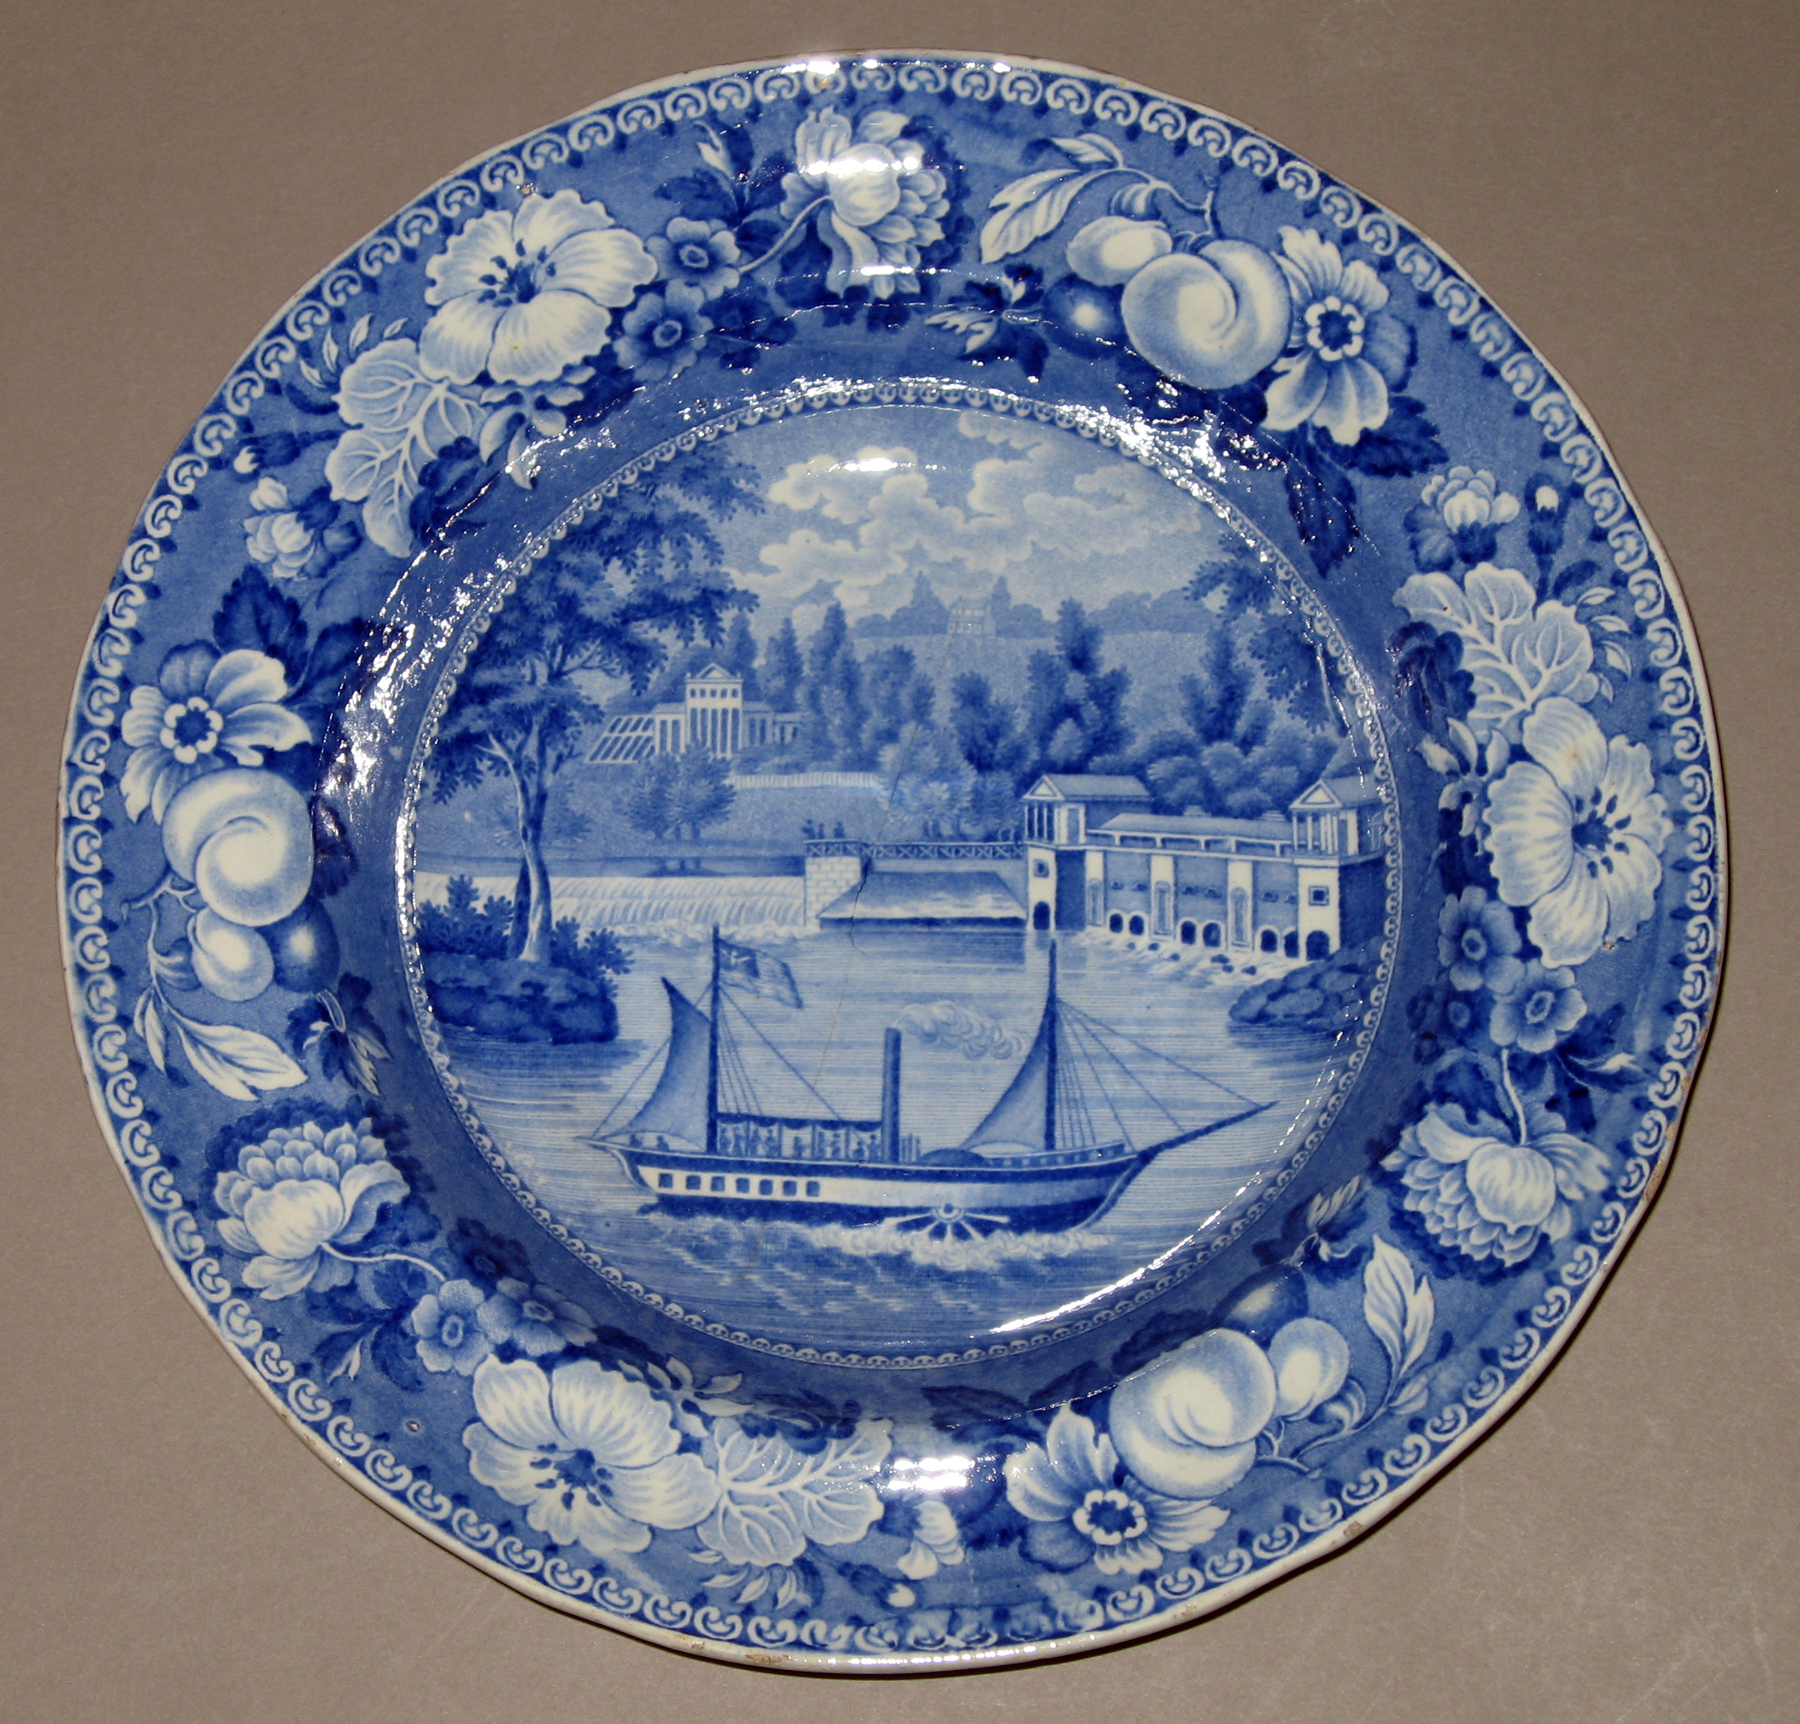 1958.2209.005 Soup plate